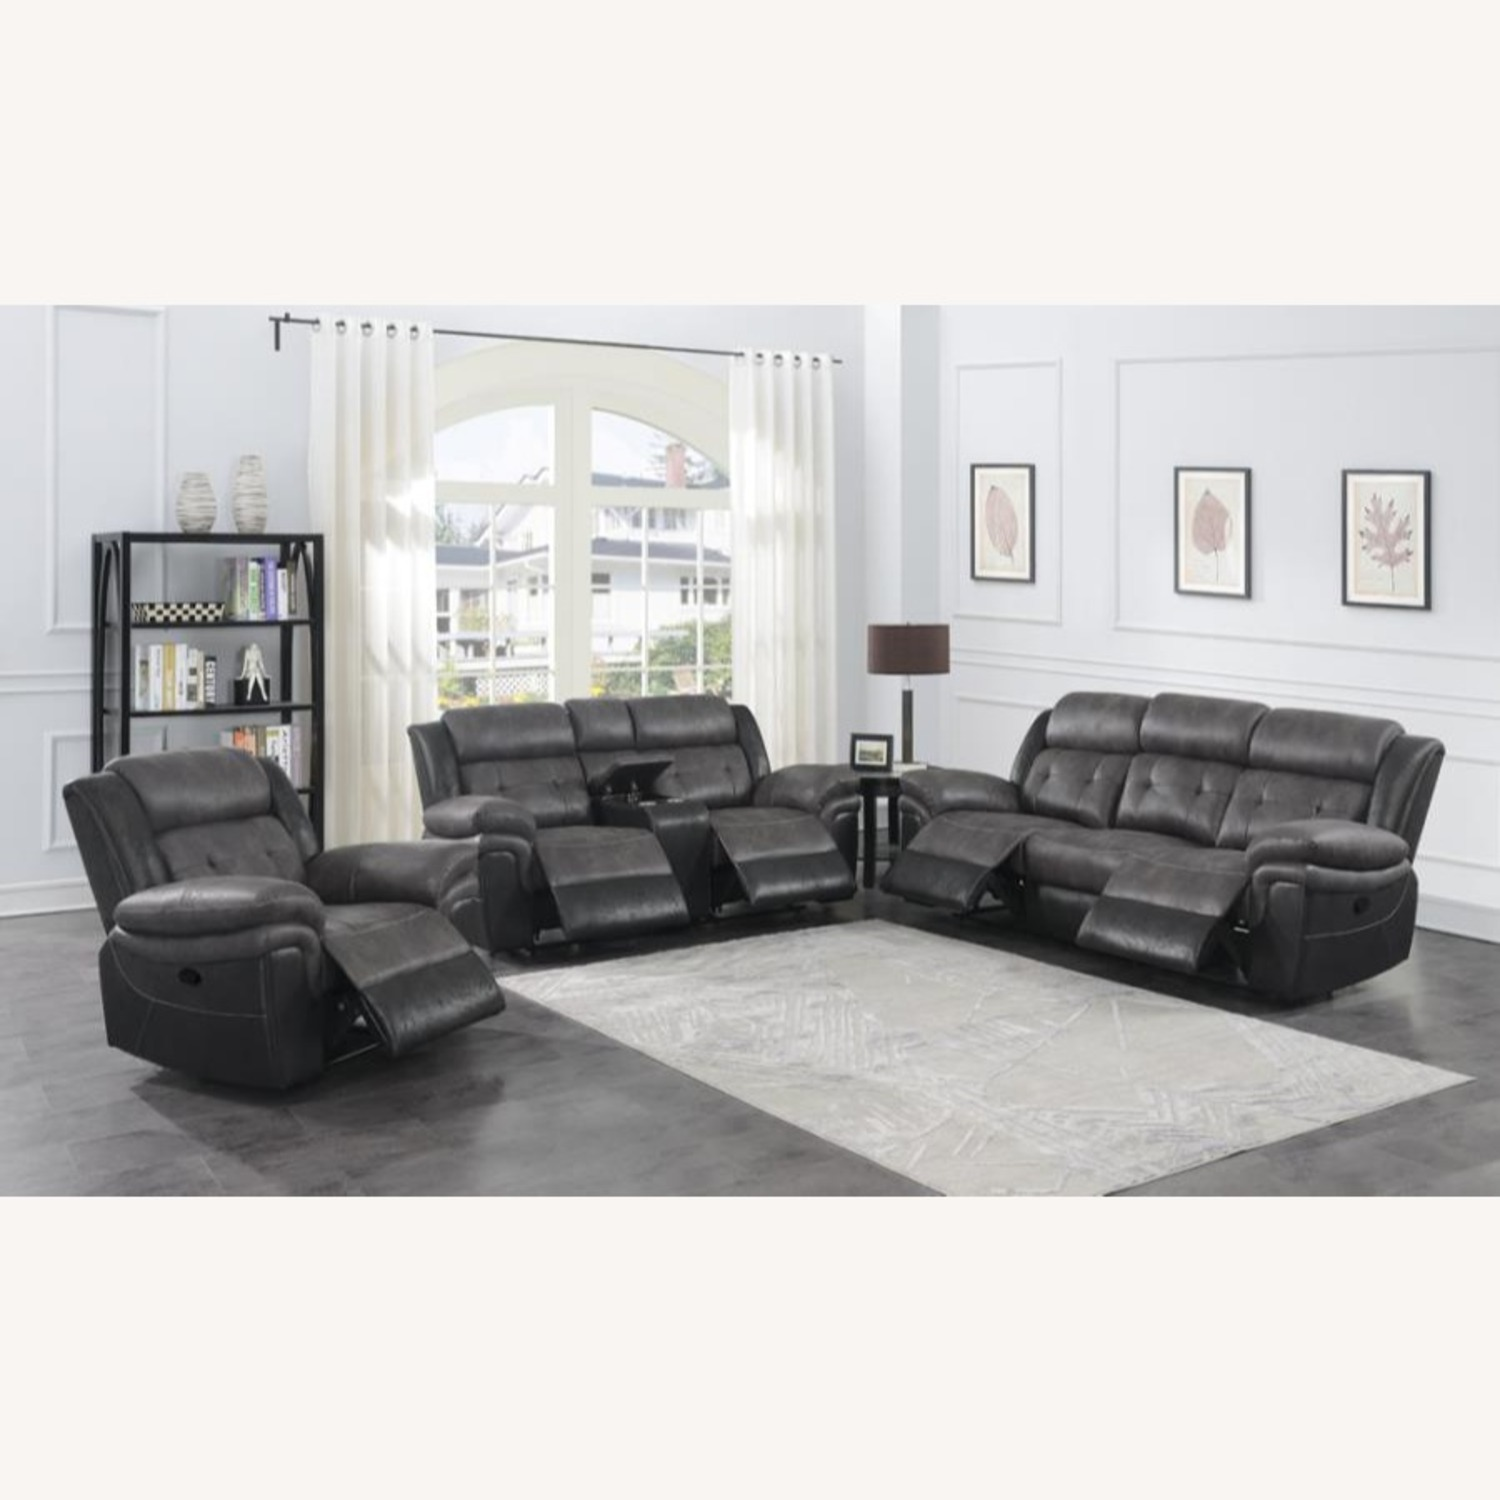 Recliner In Two-Tone Charcoal & Black Upholstery - image-8